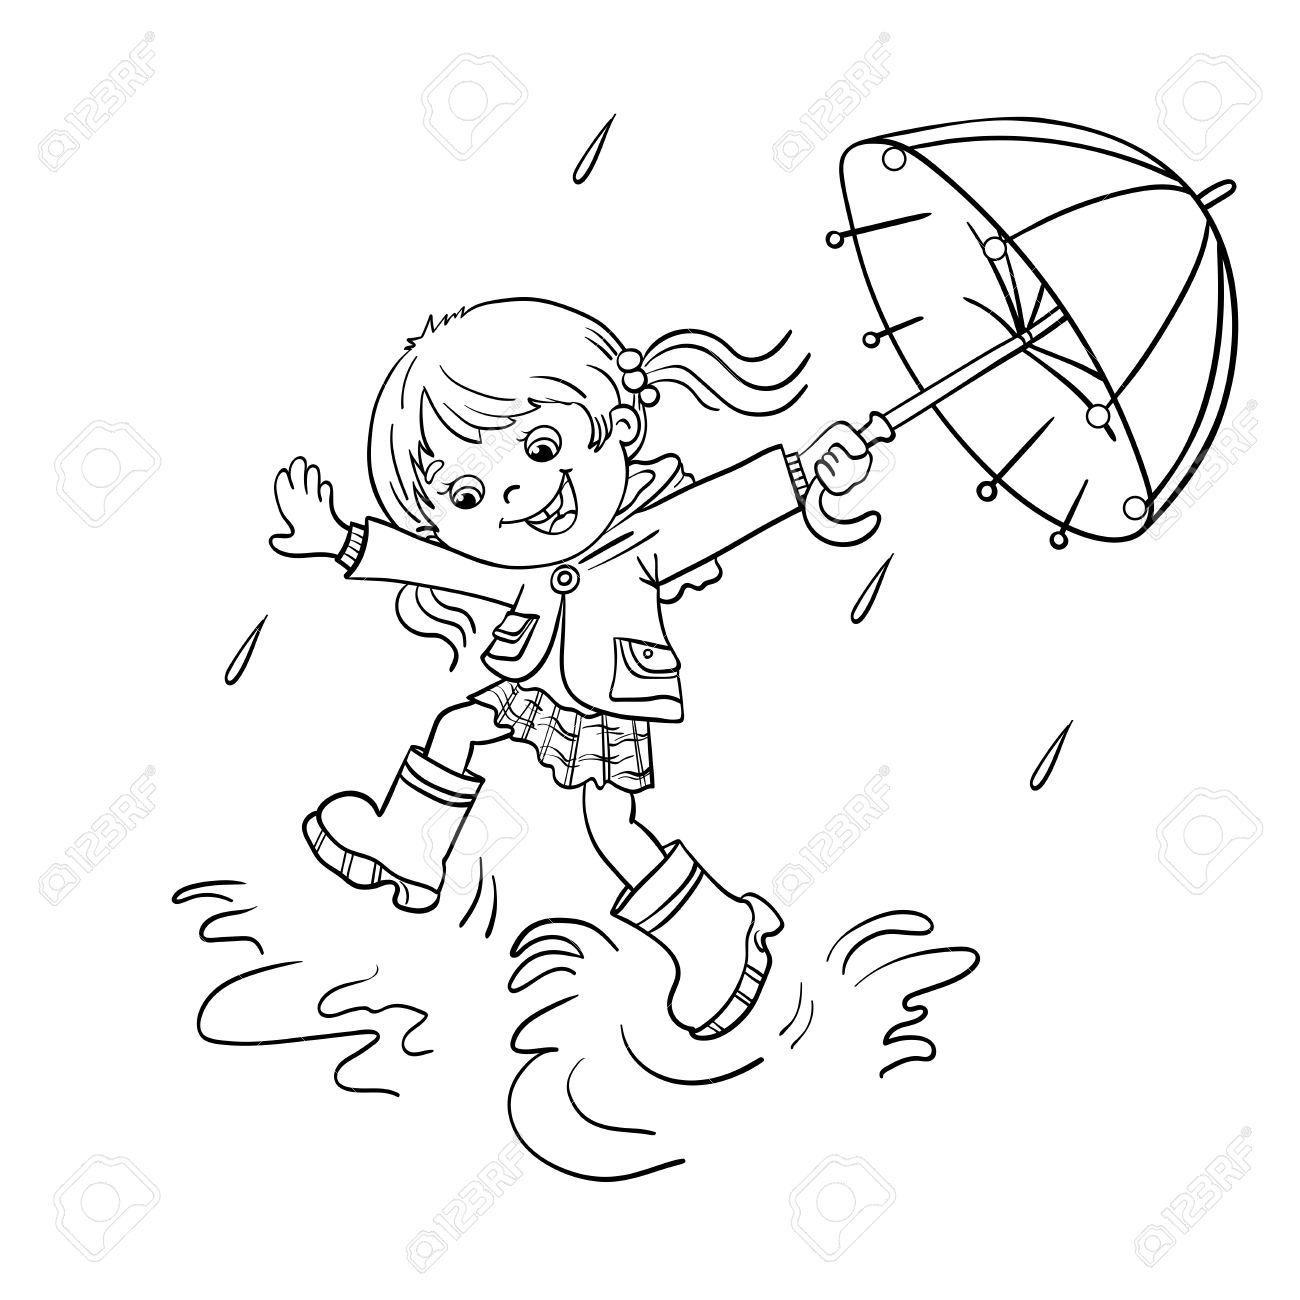 1300x1300 Coloring Page Outline Of A Cartoon Joyful Girl Jumping In The Rain